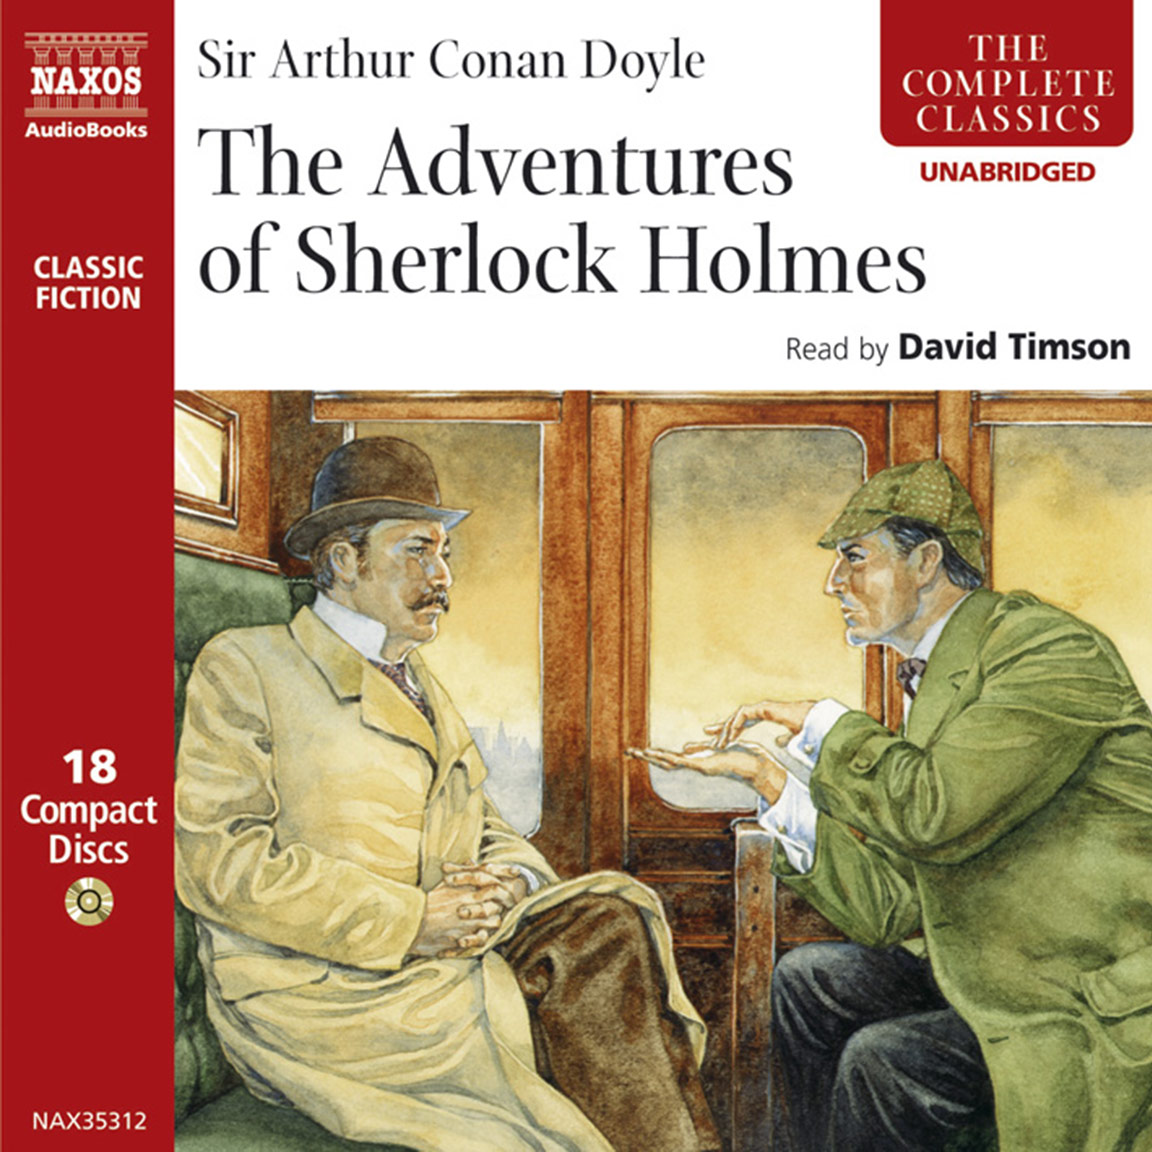 the adventures of sherlock holmes 2 essay The character was introduced primarily as a narrative device to enable doyle to kill sherlock holmes, and only featured in two of the sherlock holmes stories however, in adaptations, he has often been given a greater prominence and treated as sherlock holmes' archenemy.